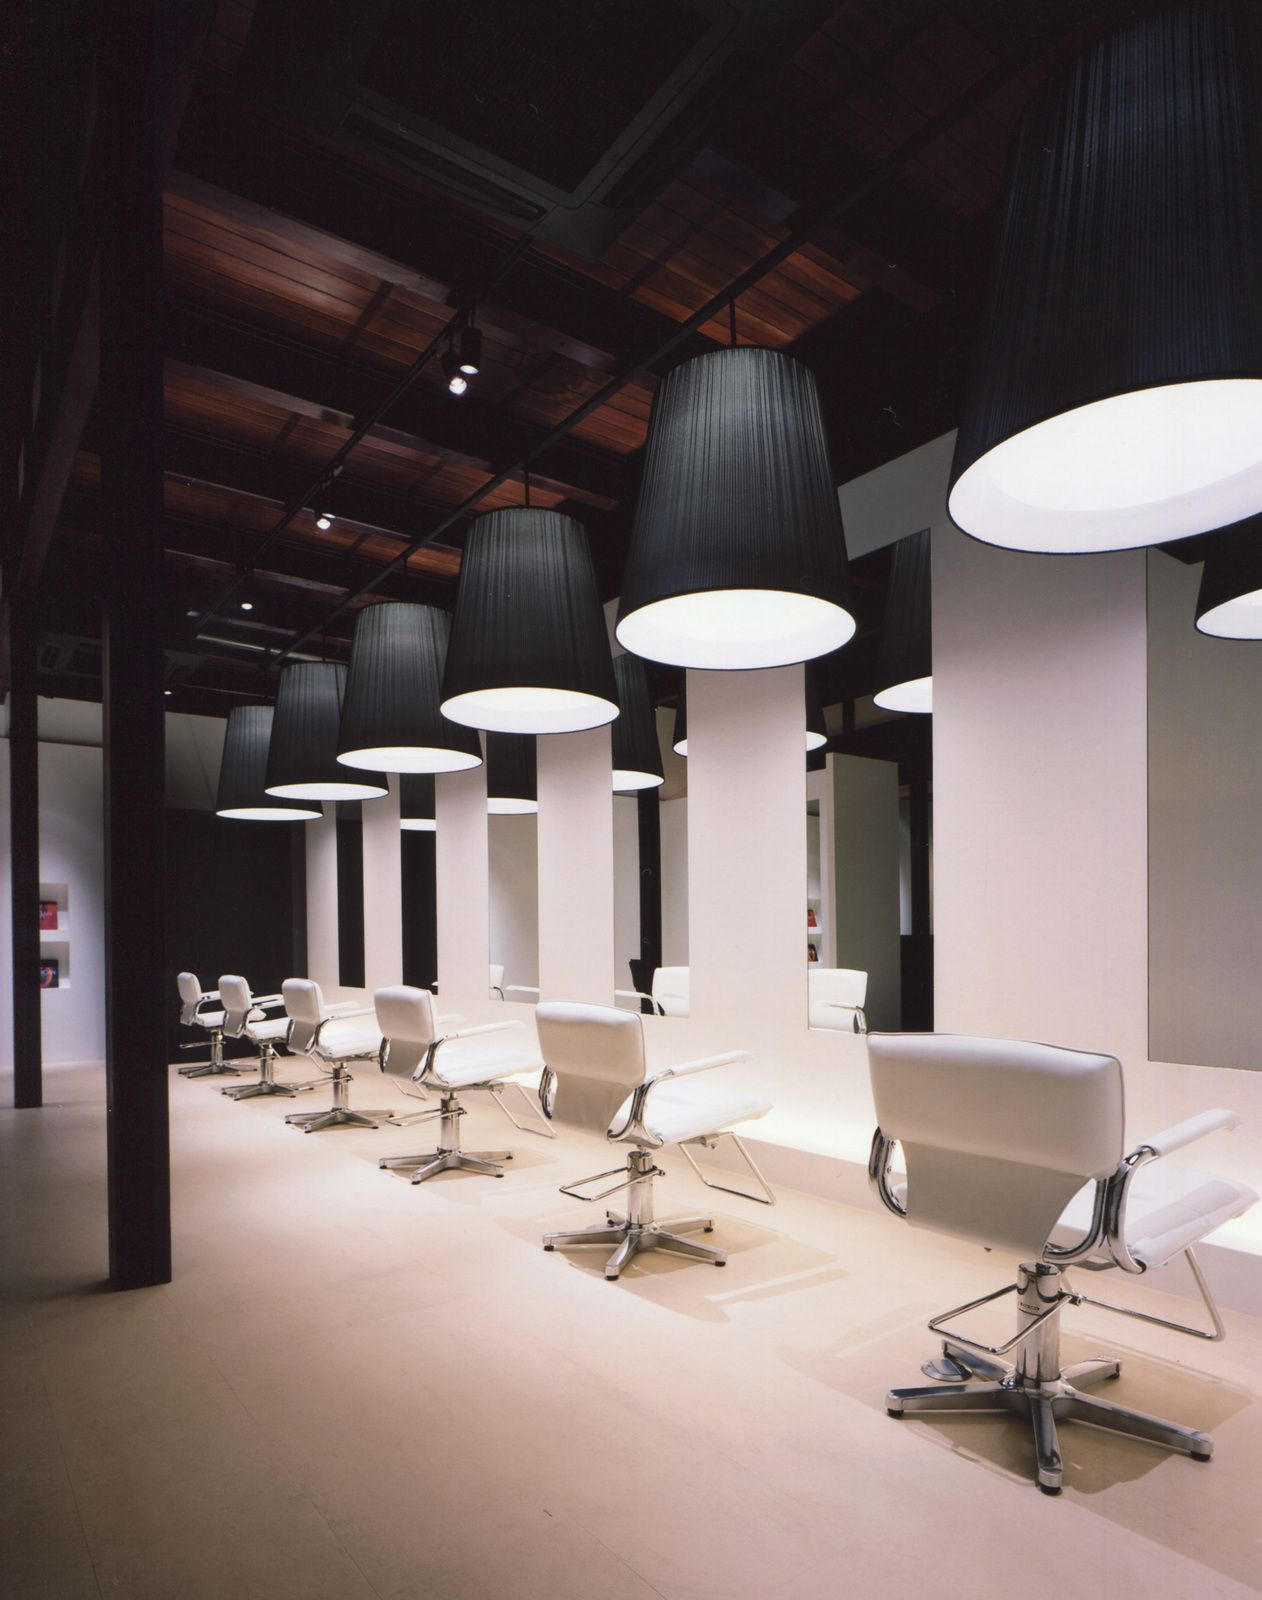 Hair salon design google salondecor pinterest for Beauty salon designs for interior